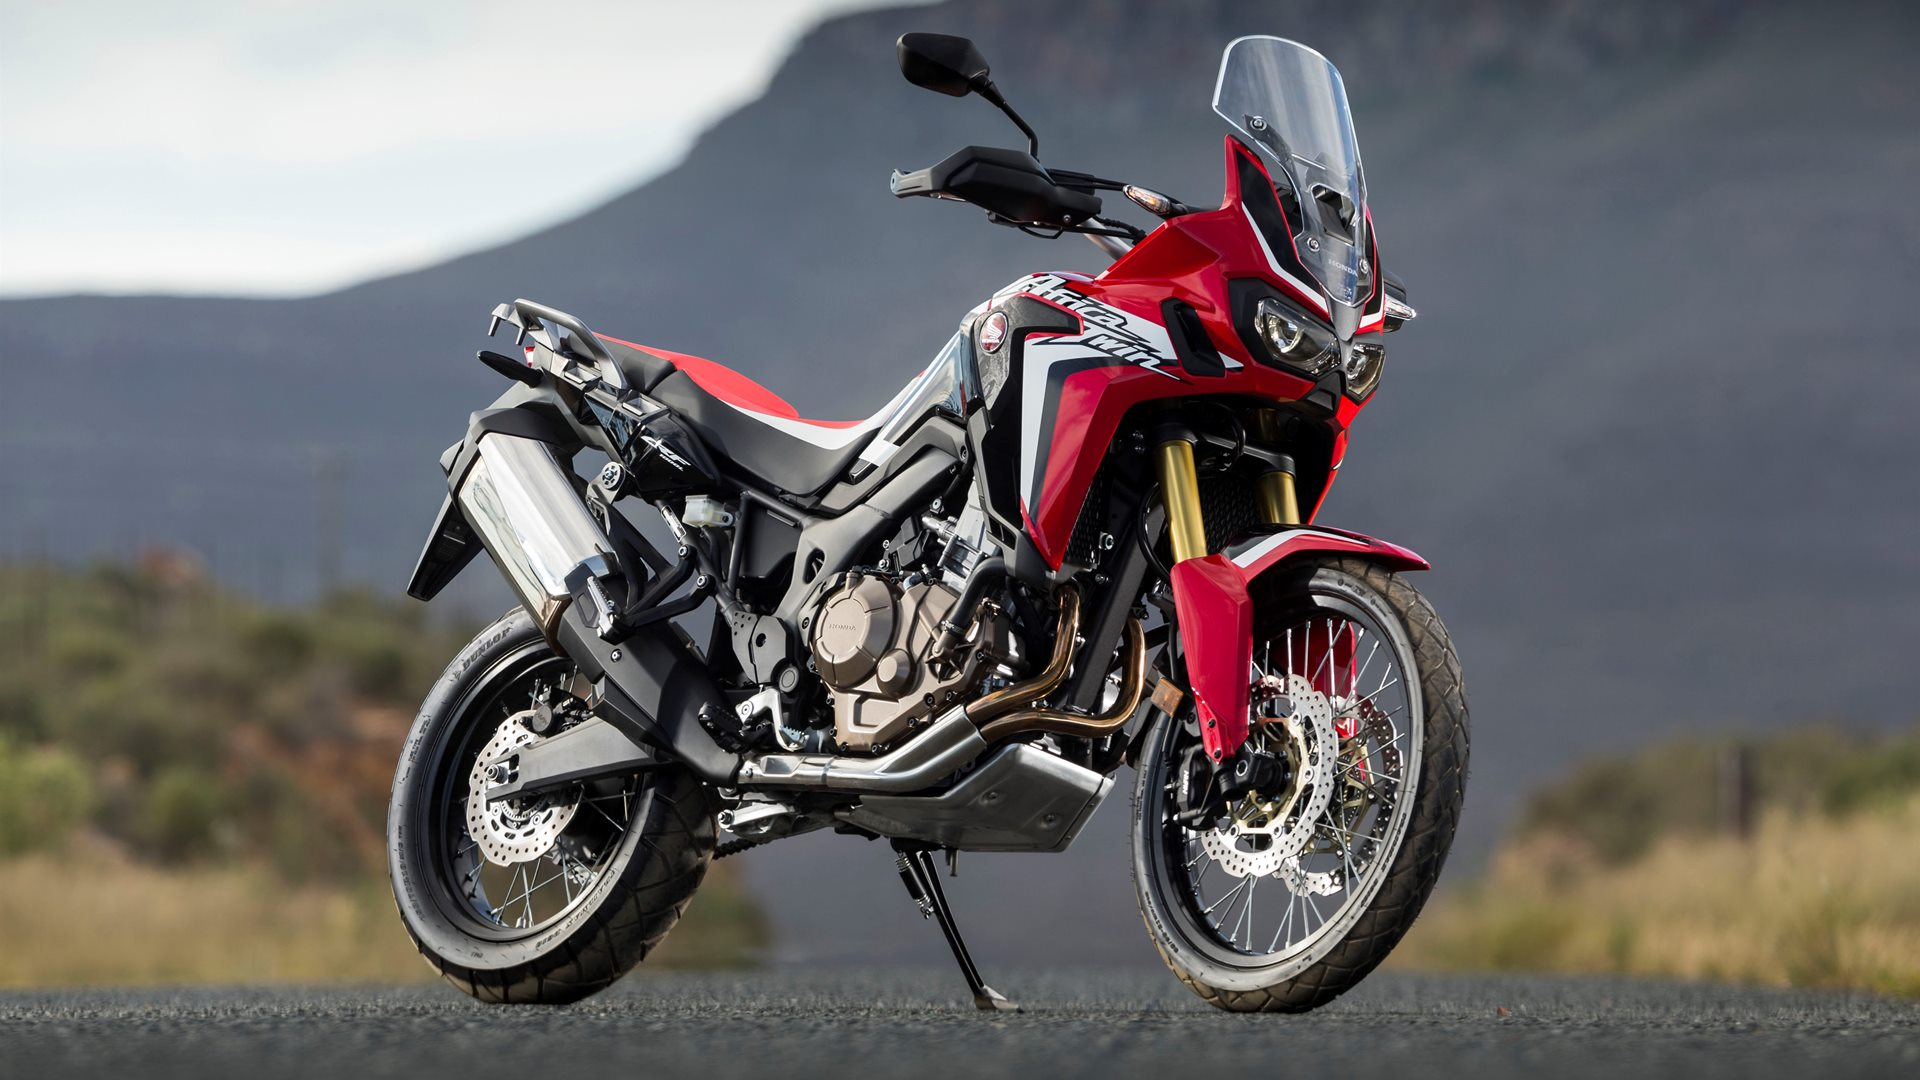 honda crf1000l africa twin launched at lakh iamabiker. Black Bedroom Furniture Sets. Home Design Ideas